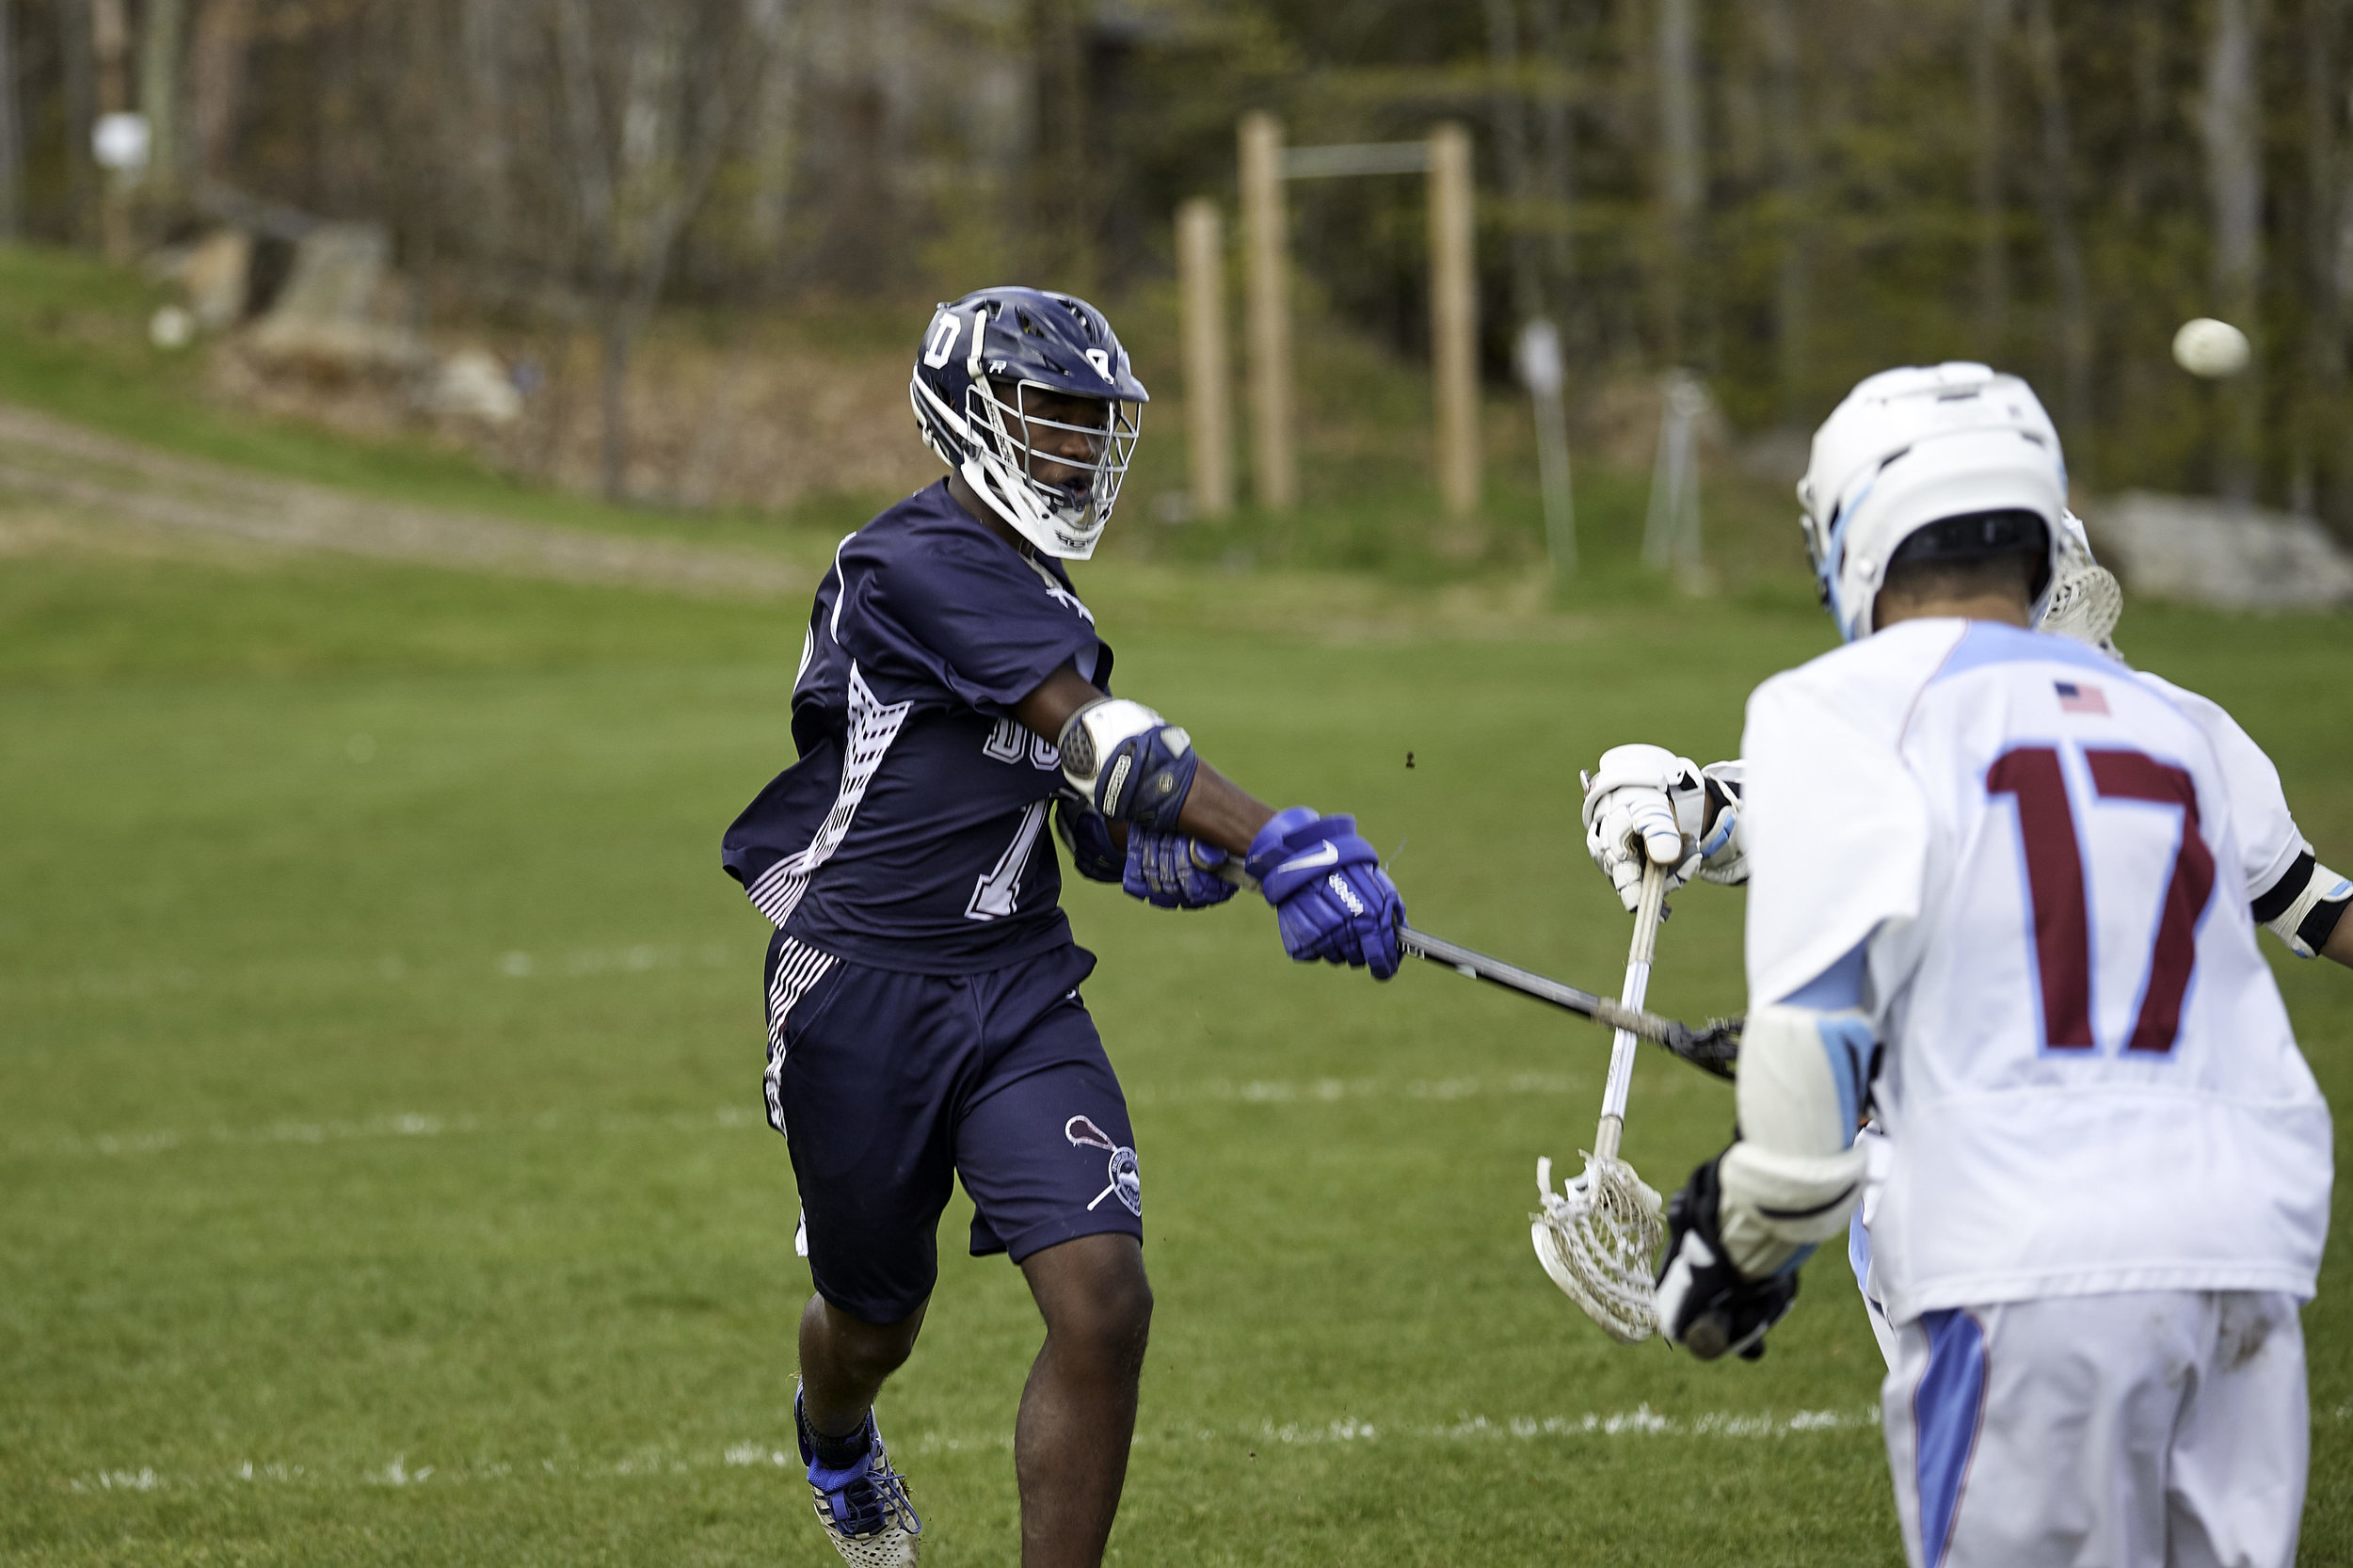 Boys Lax vs Northfield Mount Hermon JV - May 15 2019 - 0037.jpg